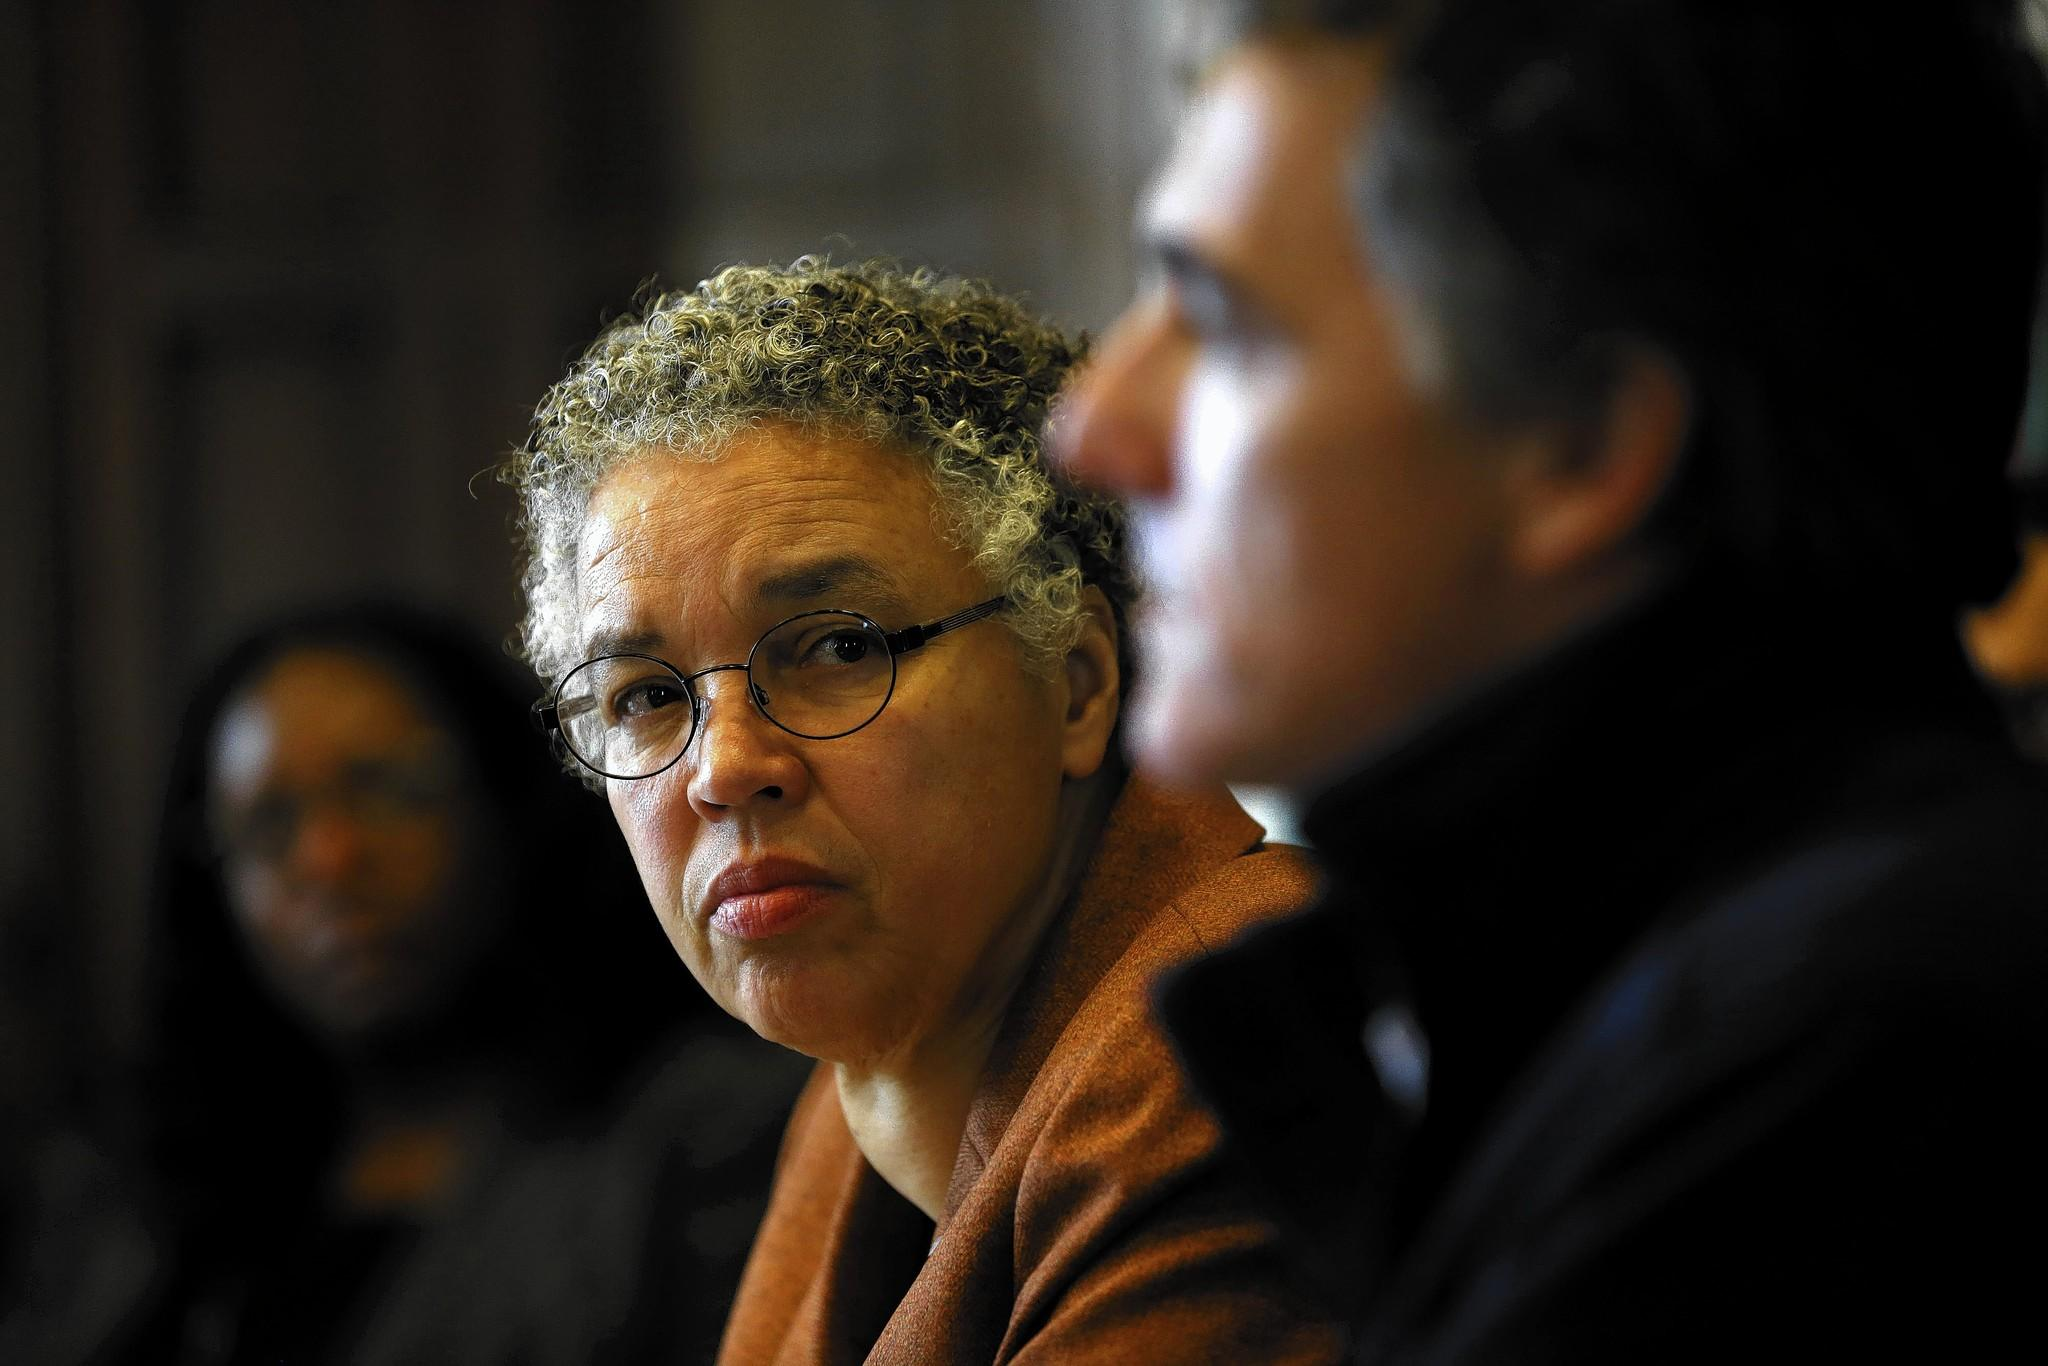 Cook County Board President Toni Preckwinkle, speaking to the Chicago Tribune's editorial board with Sheriff Tom Dart, has proposed letting her office handle the County Jail's overcrowding problem.